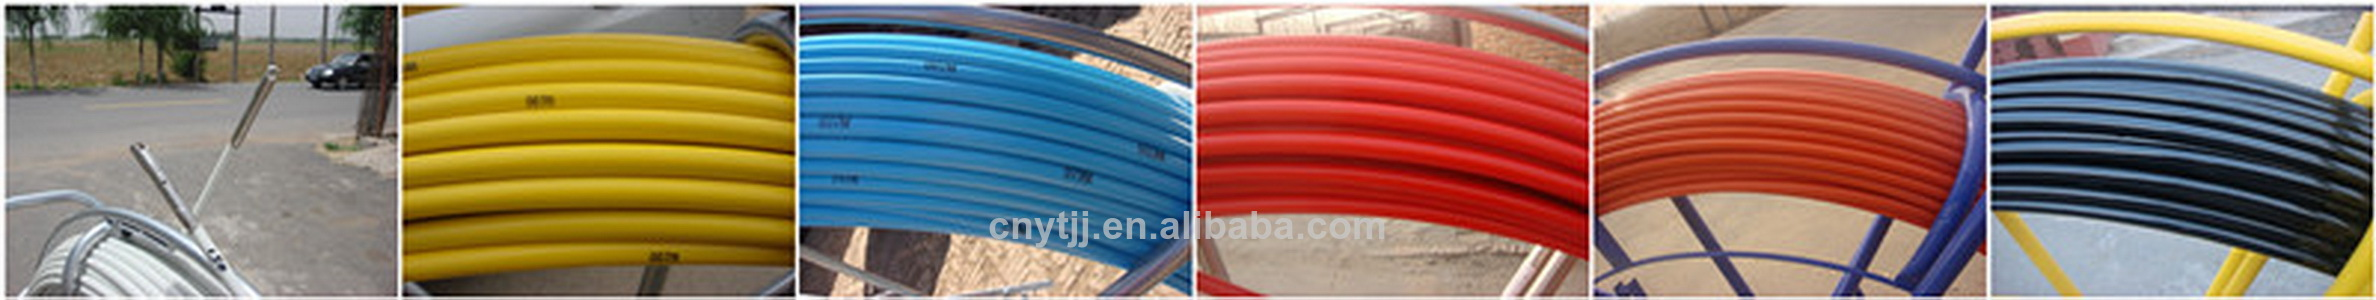 Cable continuous Duct Rod China YuFeng supply, Good cable fish tape